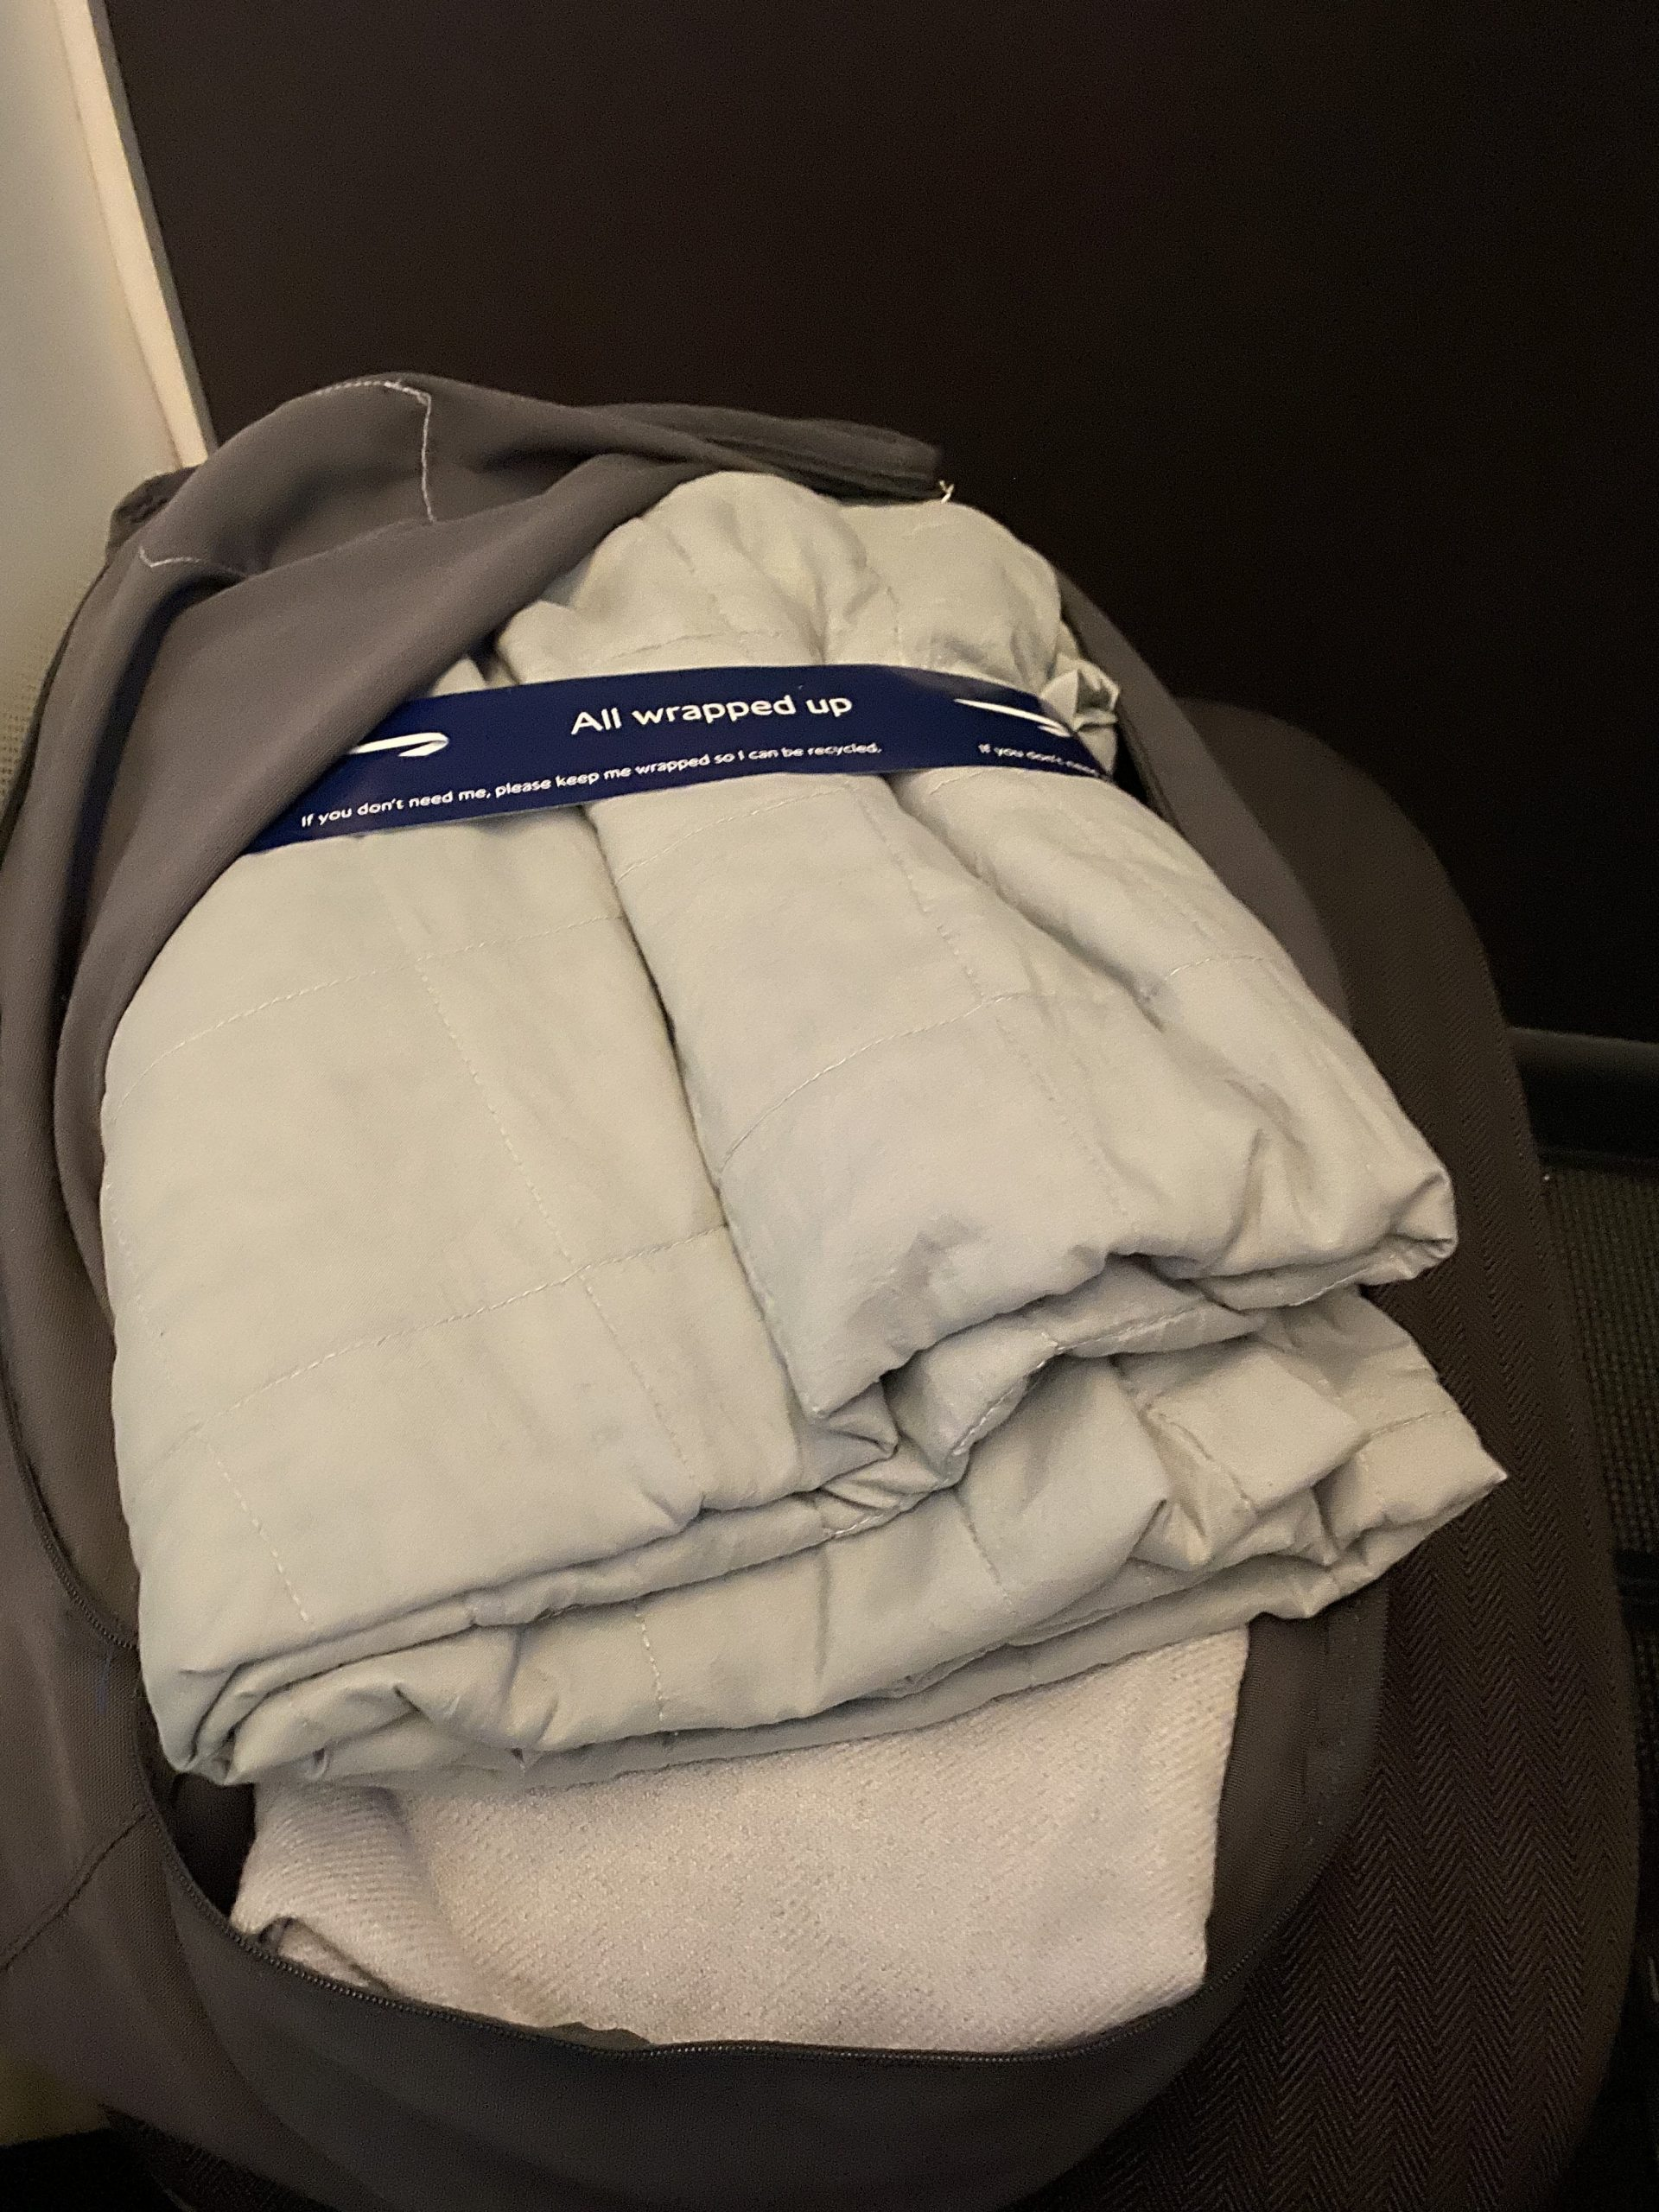 Club World White Company bedding with the day blanket at the top